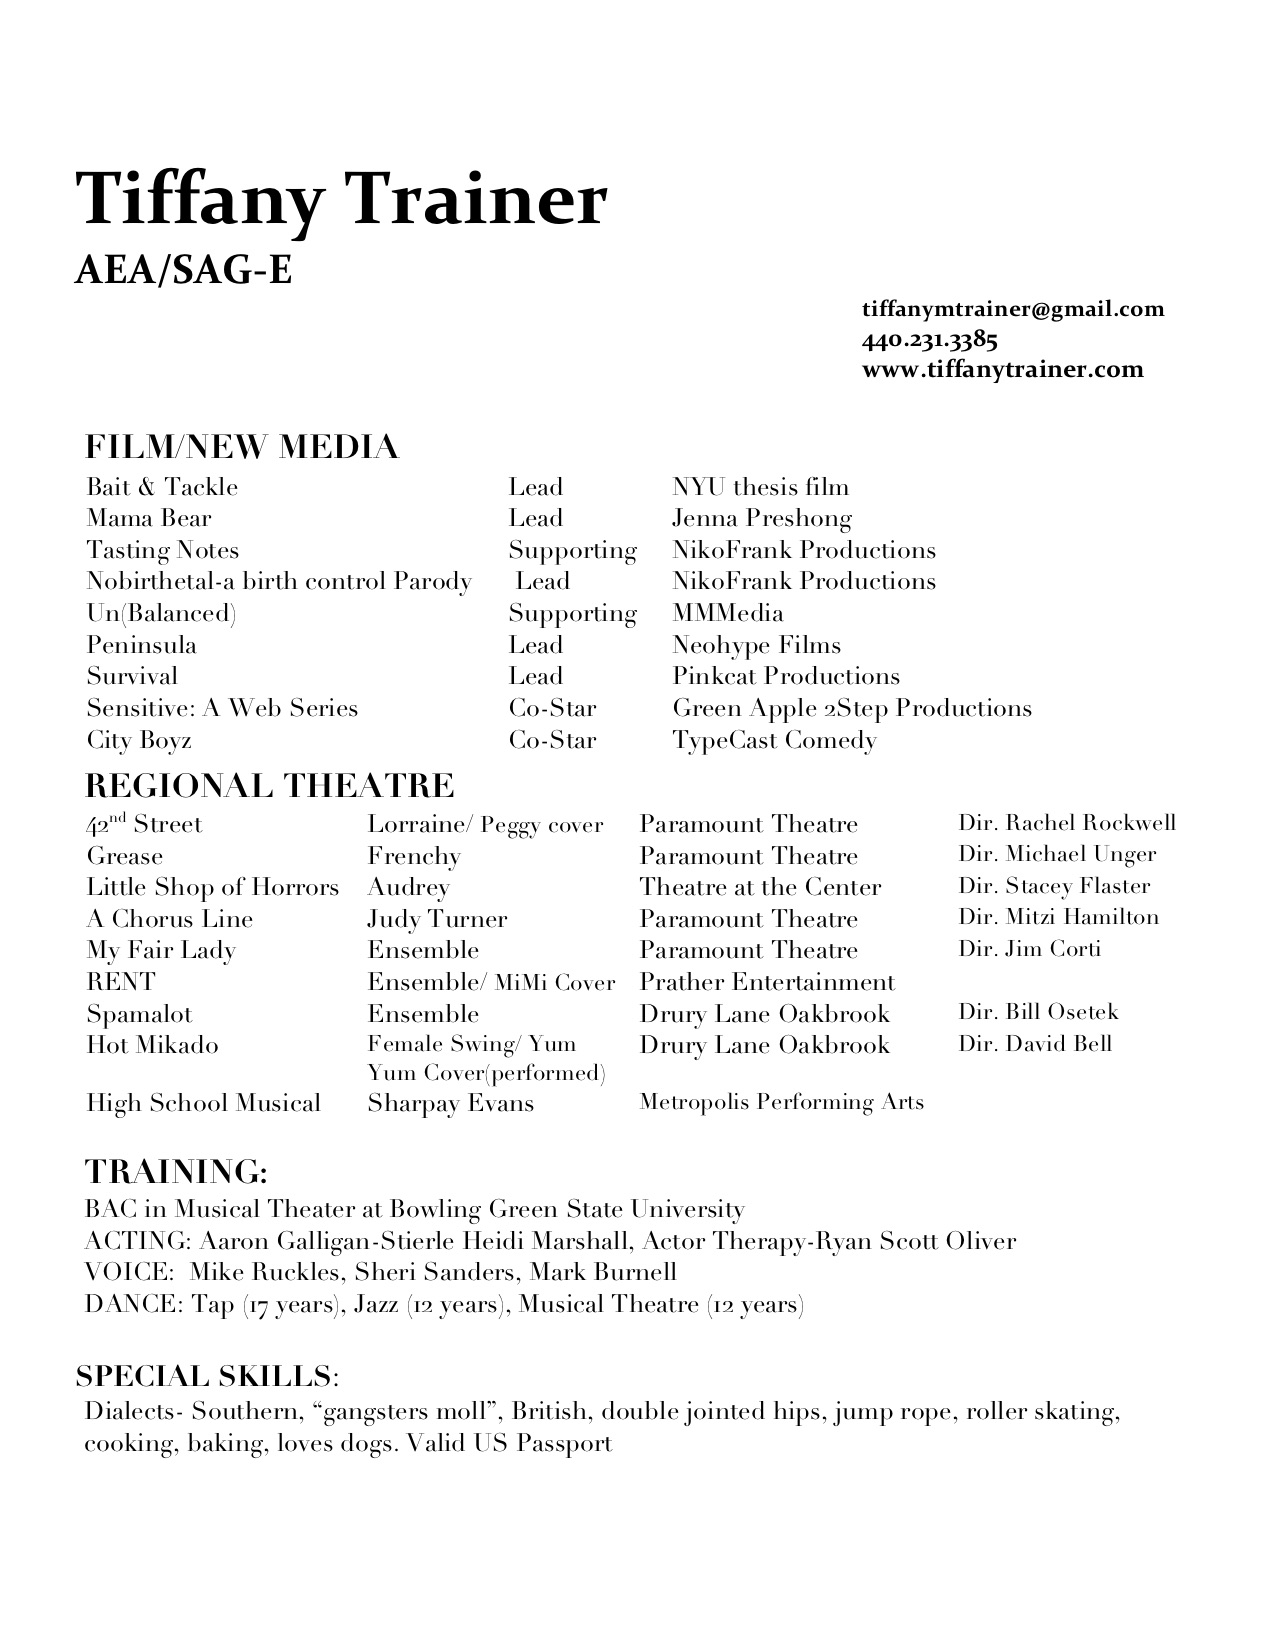 Tiffany Resume JPEG.jpg